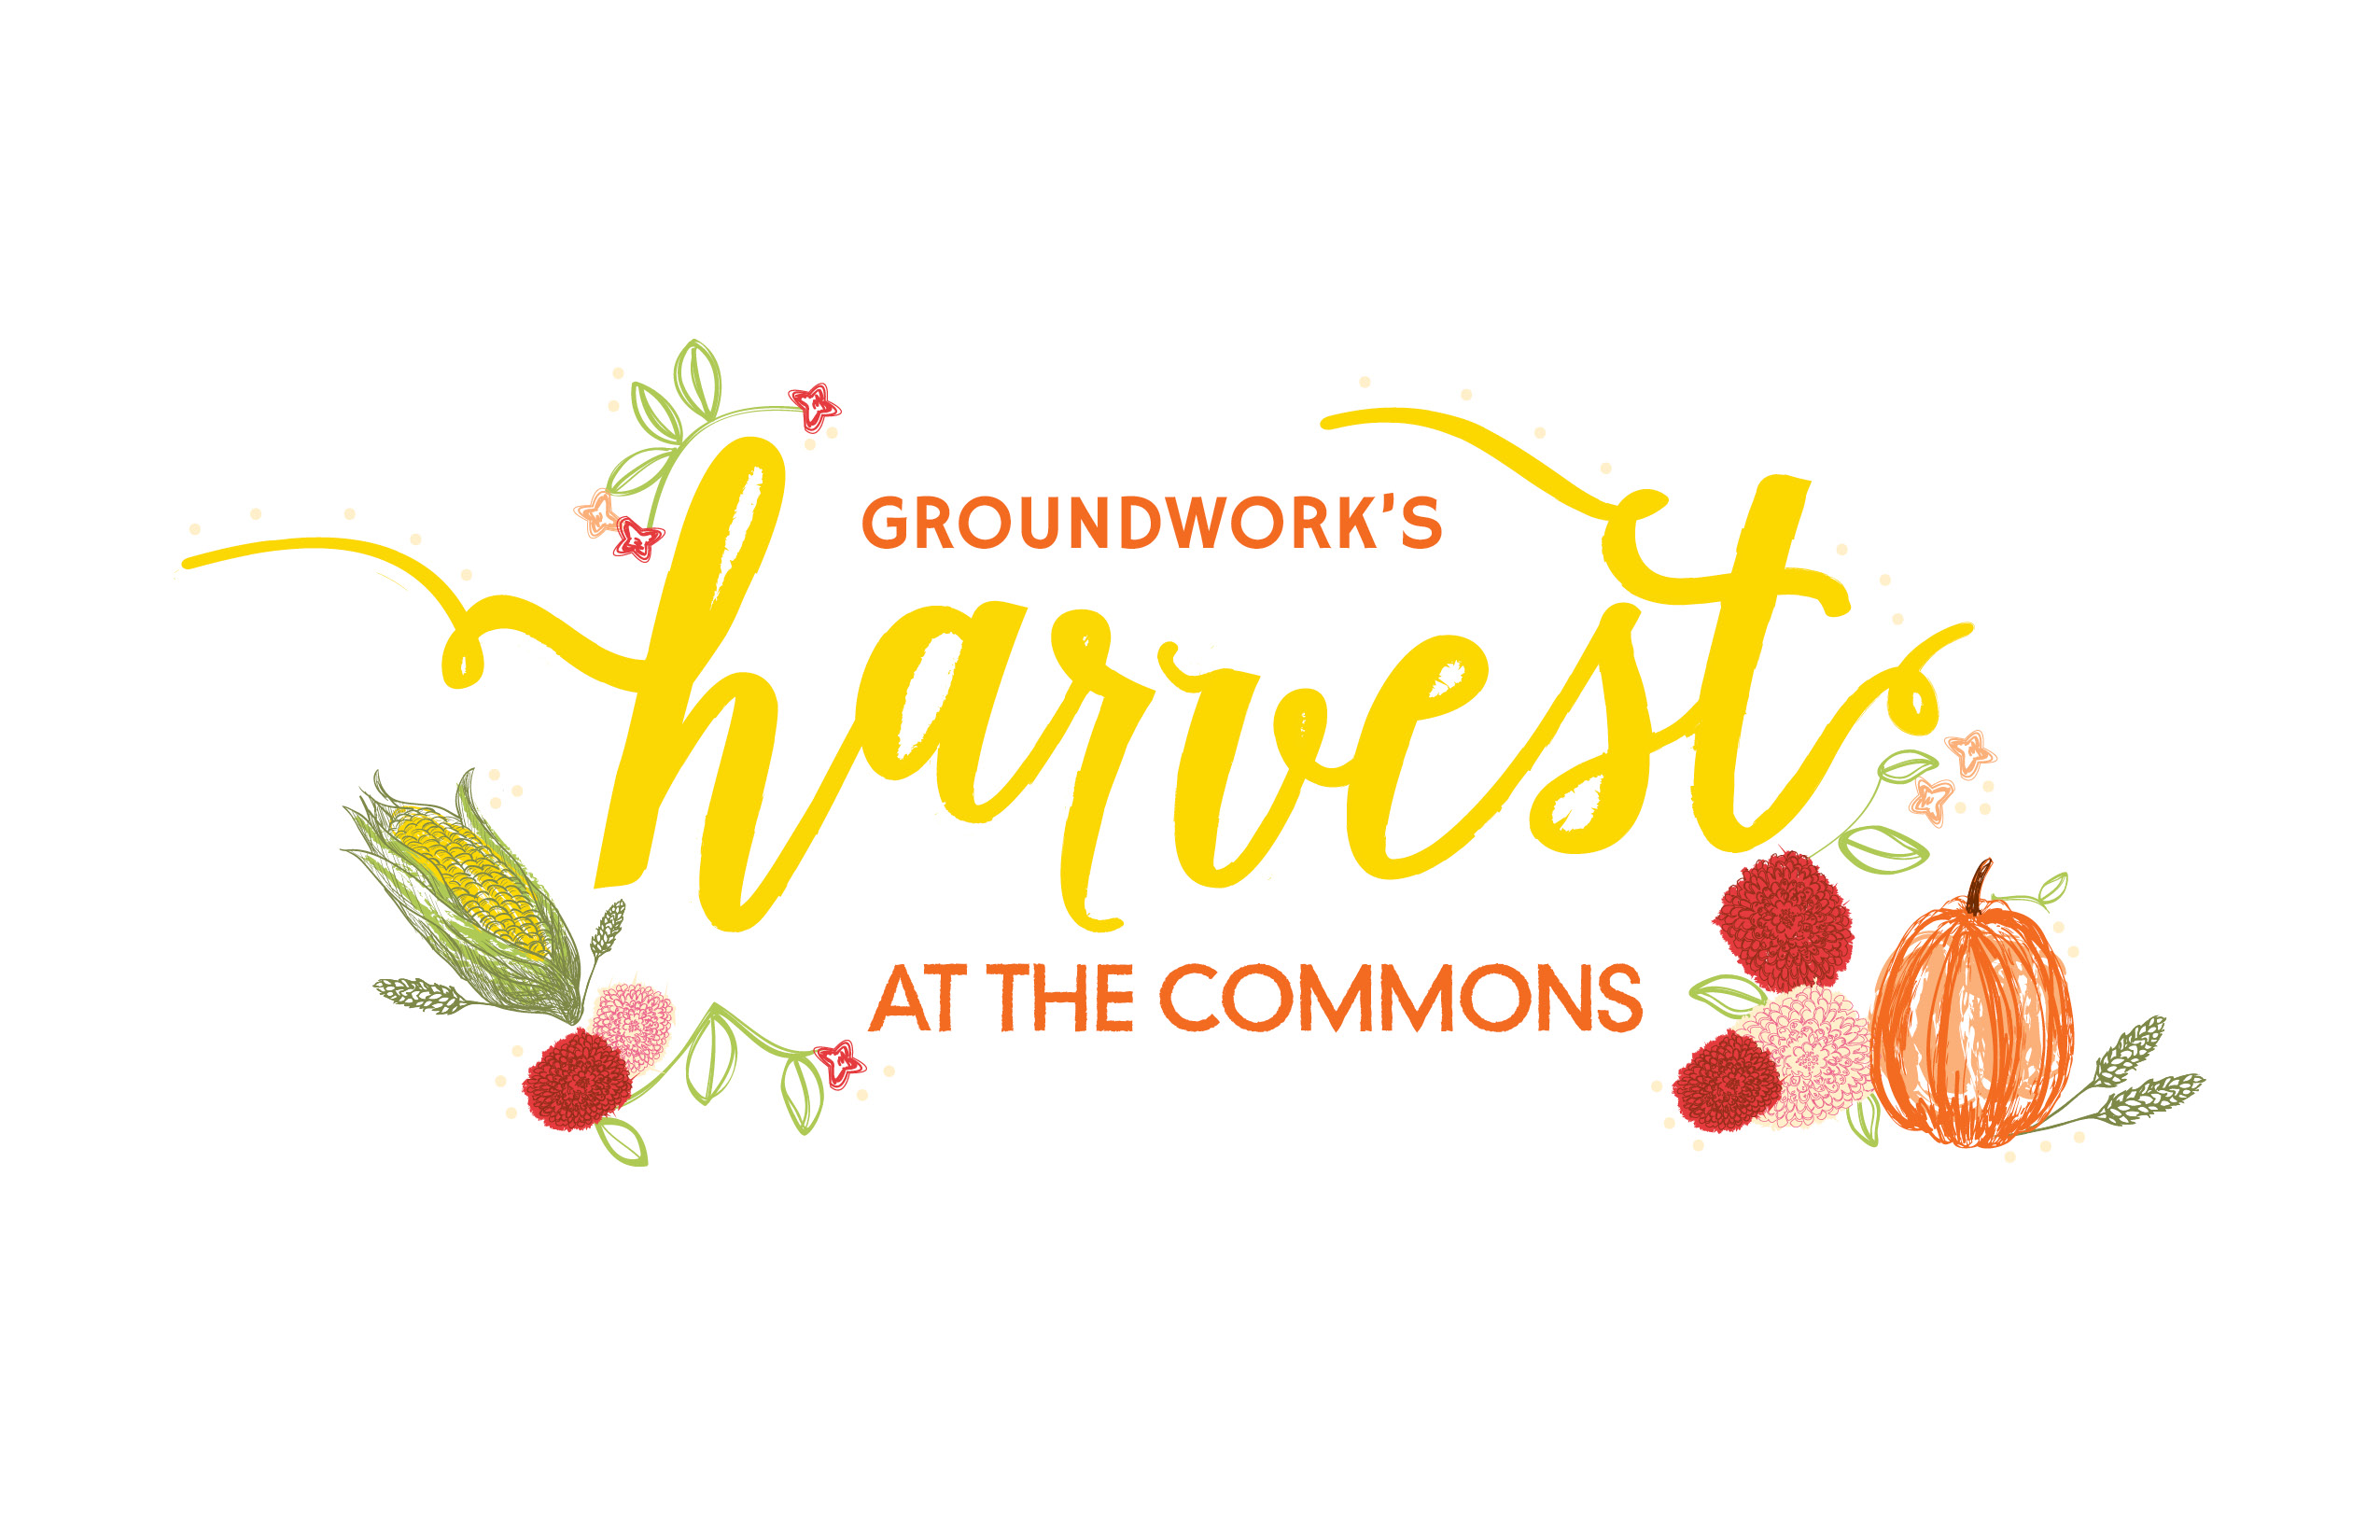 Groundwork's Harvest at the Commons